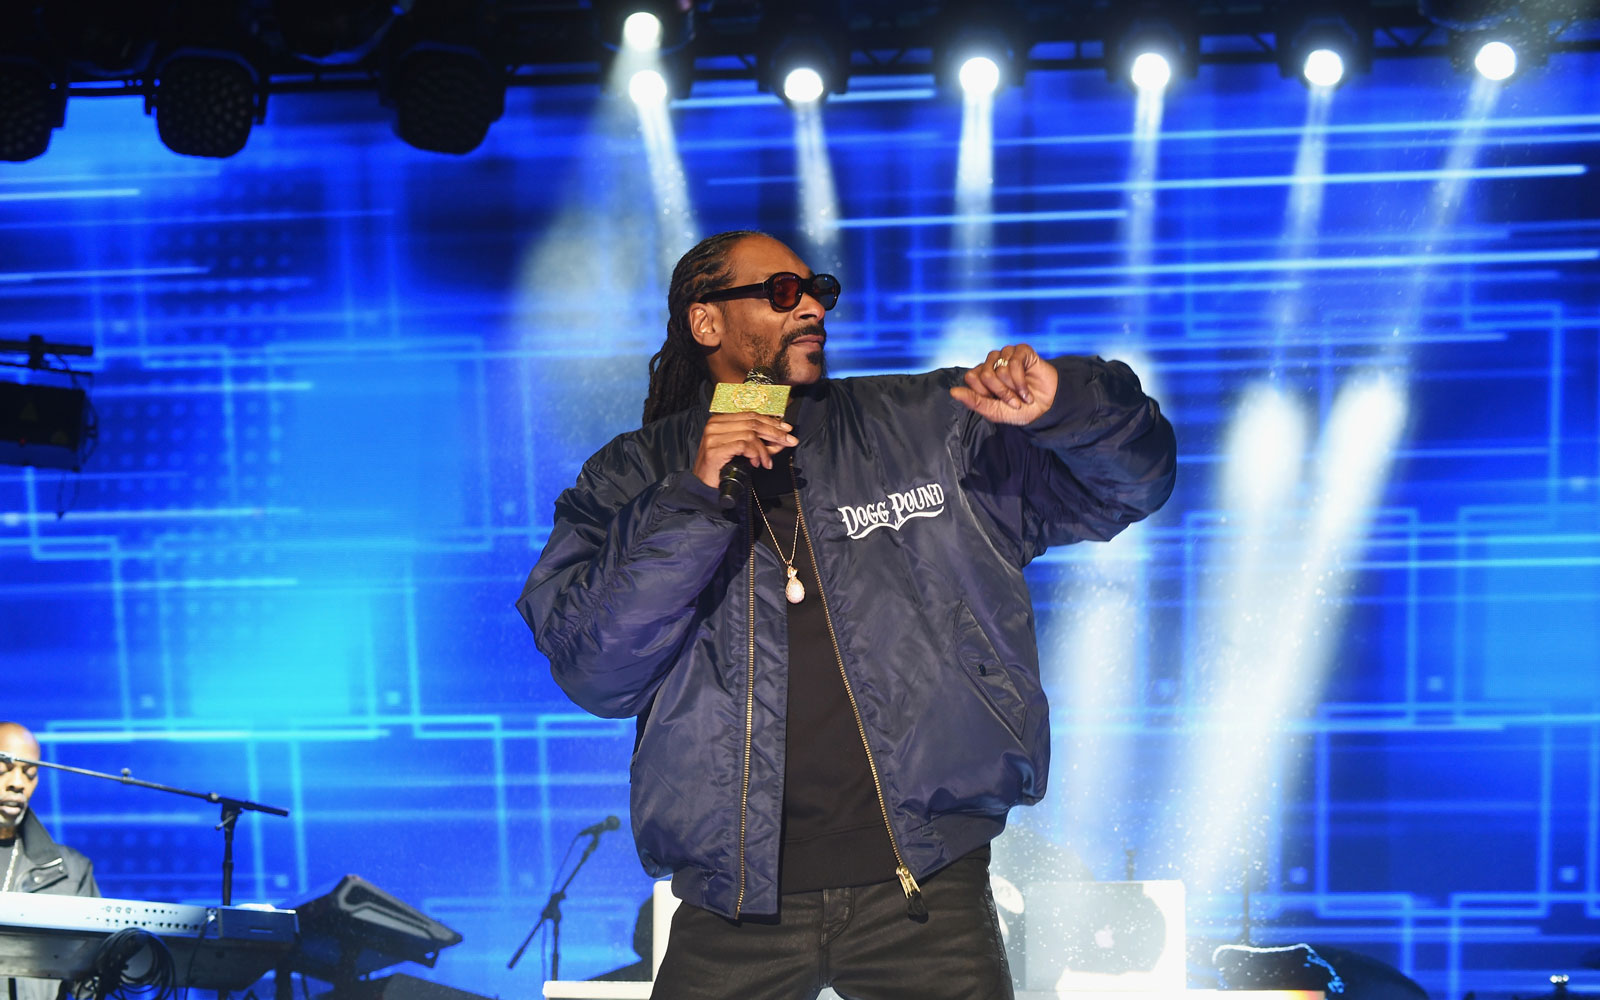 Snoop Dogg Wants to bring his music festival to a Mississippi town